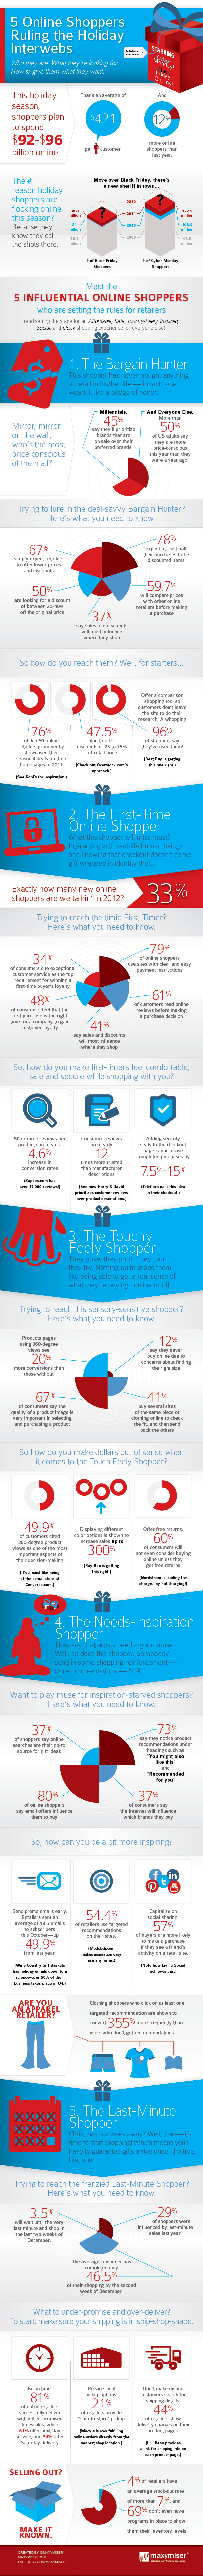 Christmas Shopper Types-Infographic